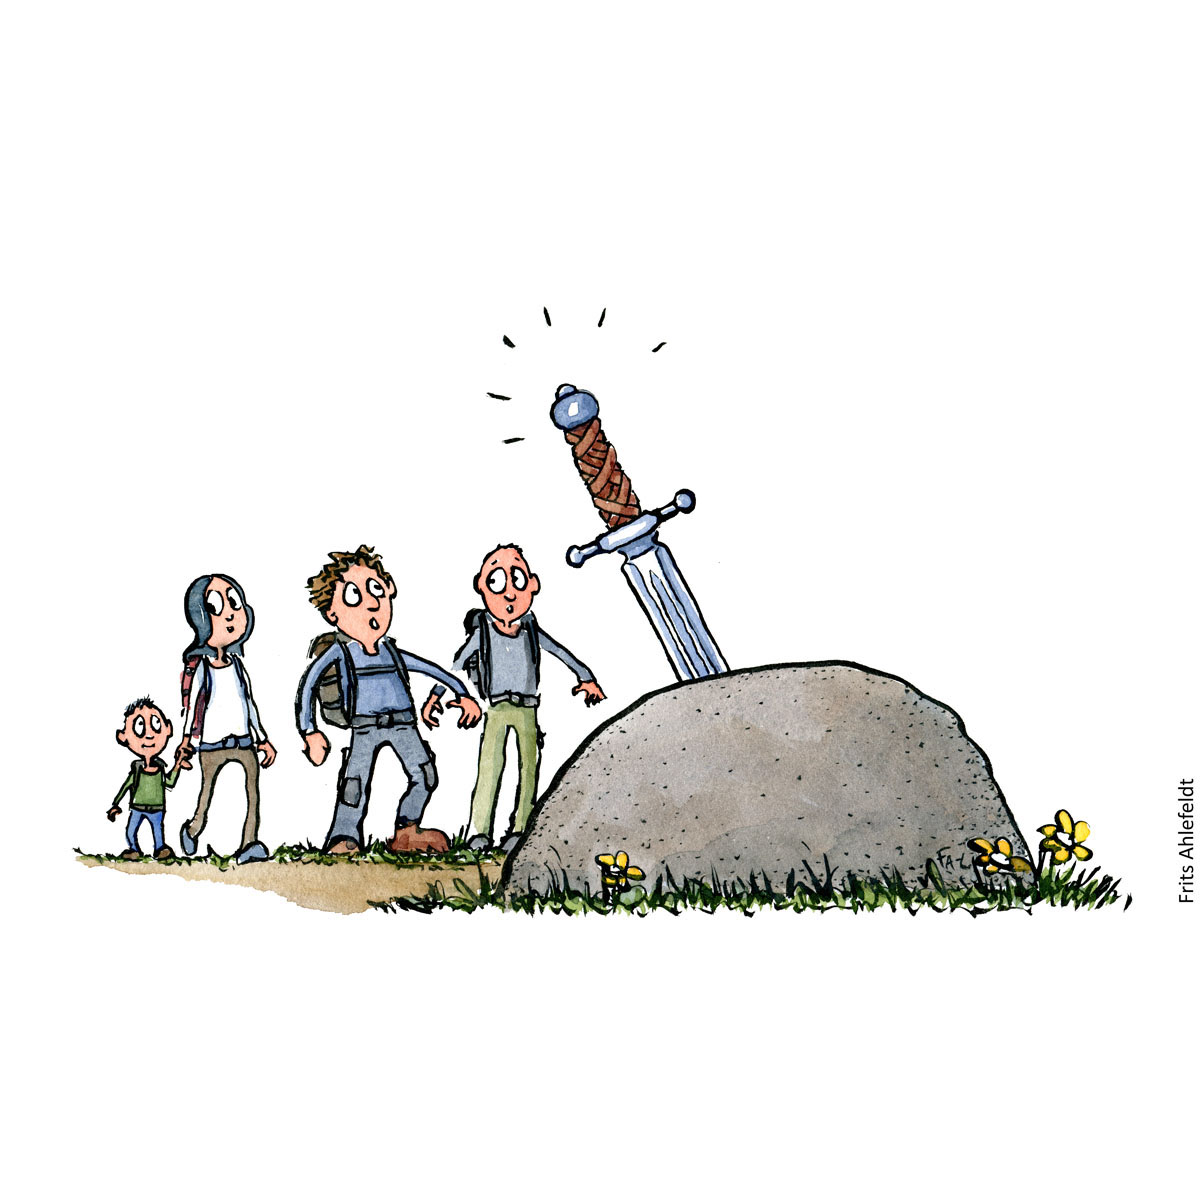 Drawing of hikers by a stone with a sword in it. Hiking illustration handmade by Frits Ahlefeldt